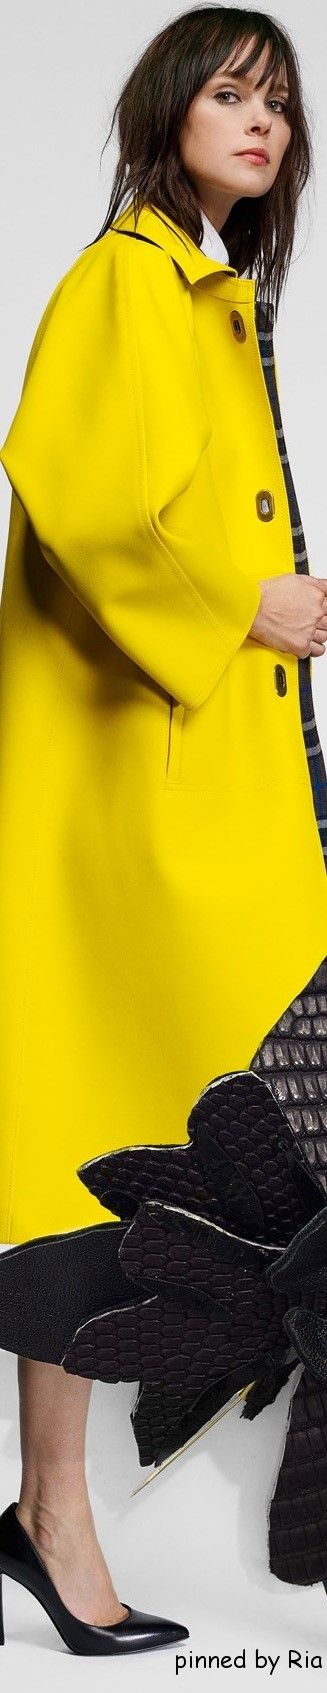 AMARILLO....❤ yellow coat women fashion outfit clothing style apparel @roressclothes closet ideas